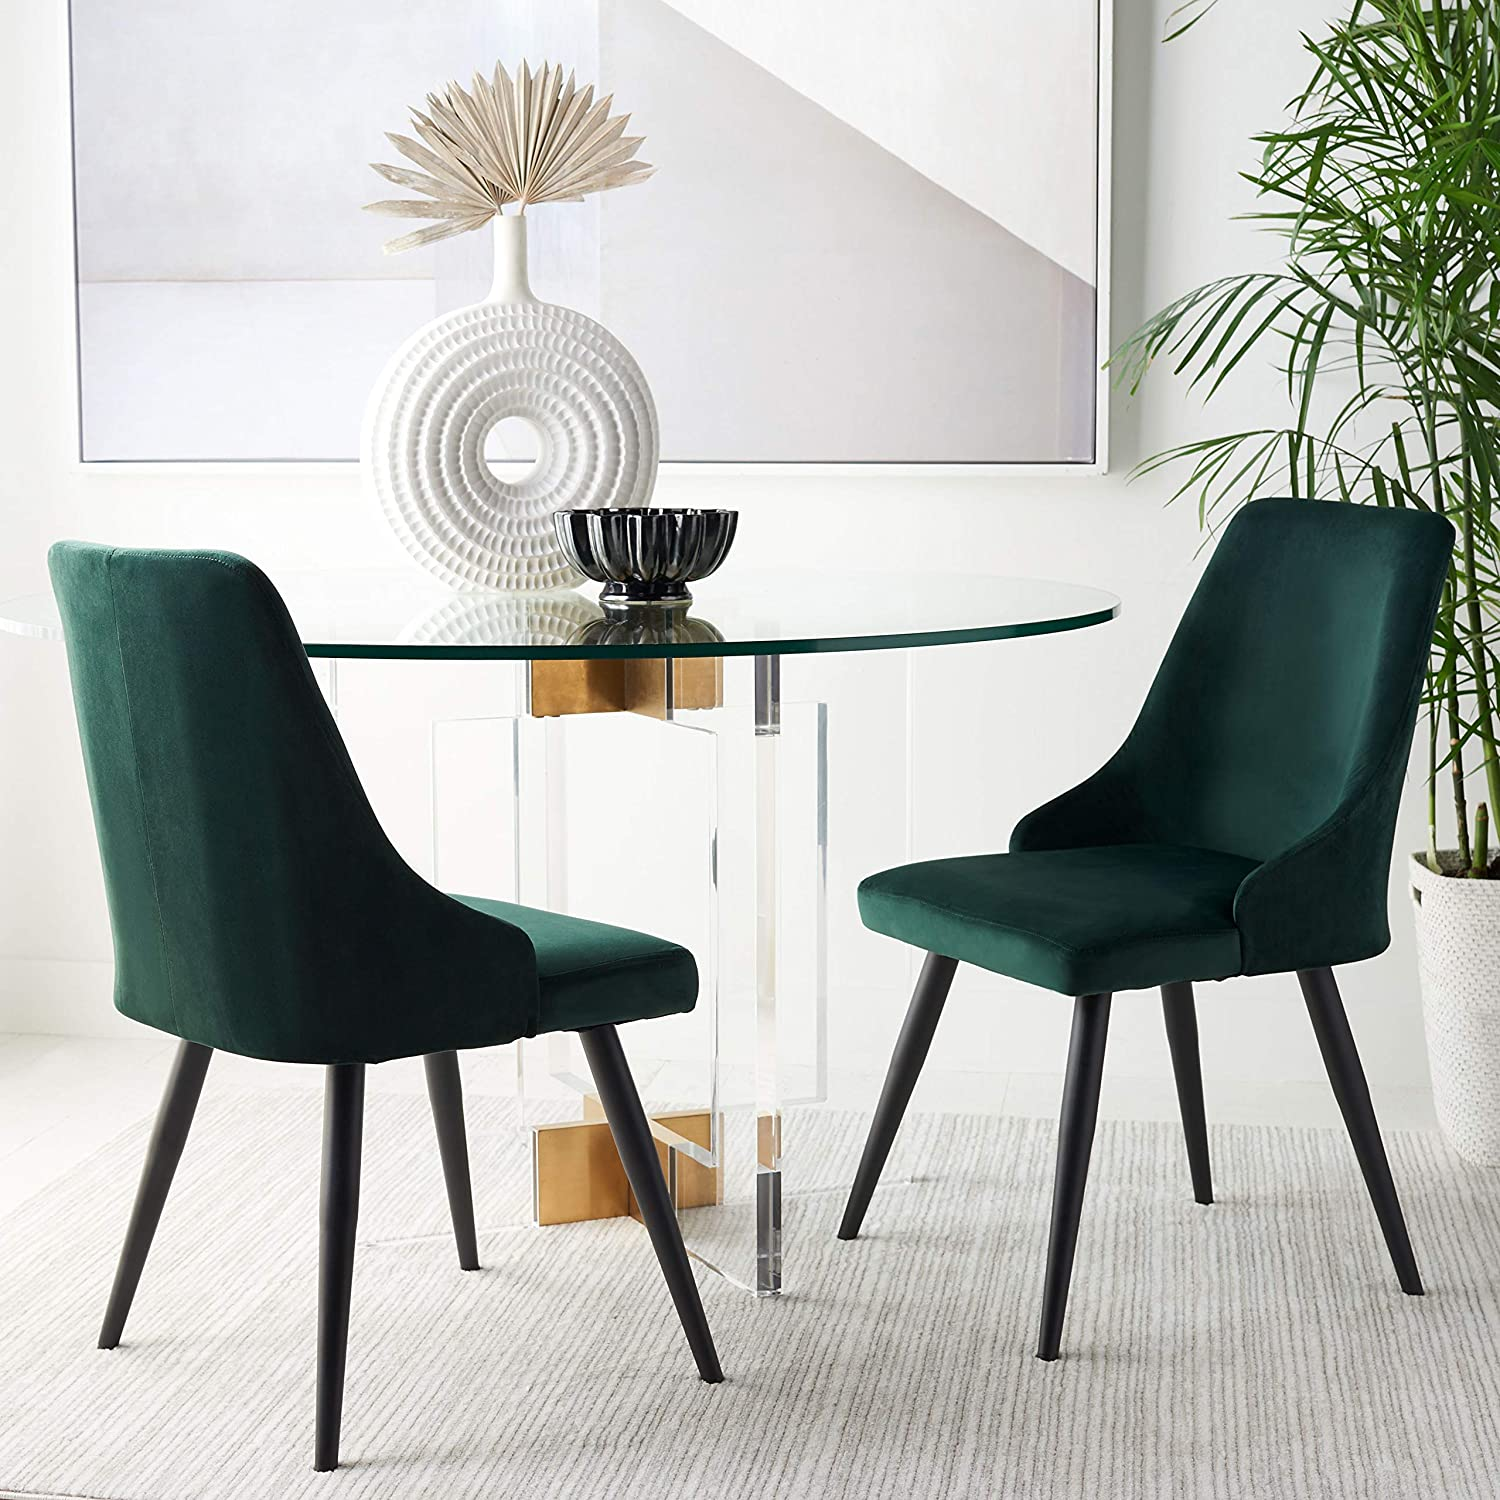 velvet-green-upholstered-dining-chairs-high-backrest-tapered-black-legs-sophisticated-colorful-dining-room-furniture-for-sale-online